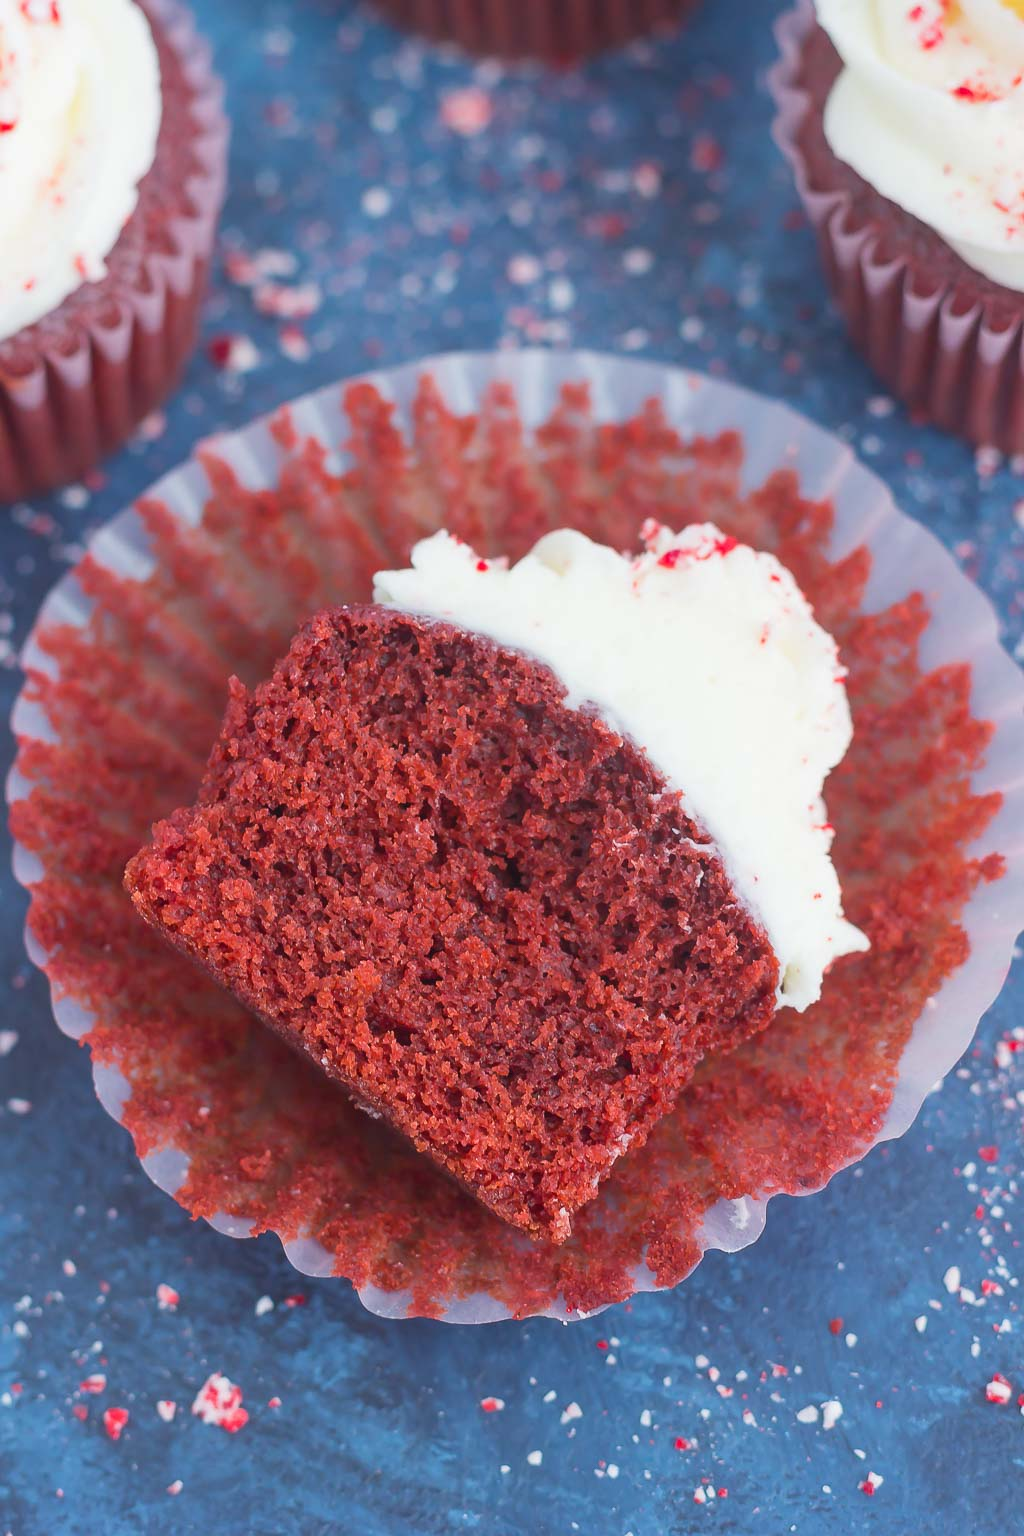 These Peppermint Red Velvet Cupcakes are light, fluffy, and bursting with sweet chocolate and hint of peppermint. Simple to make and topped with a swirl of peppermint frosting, these festive cupcakes will be the hit of the holiday season!